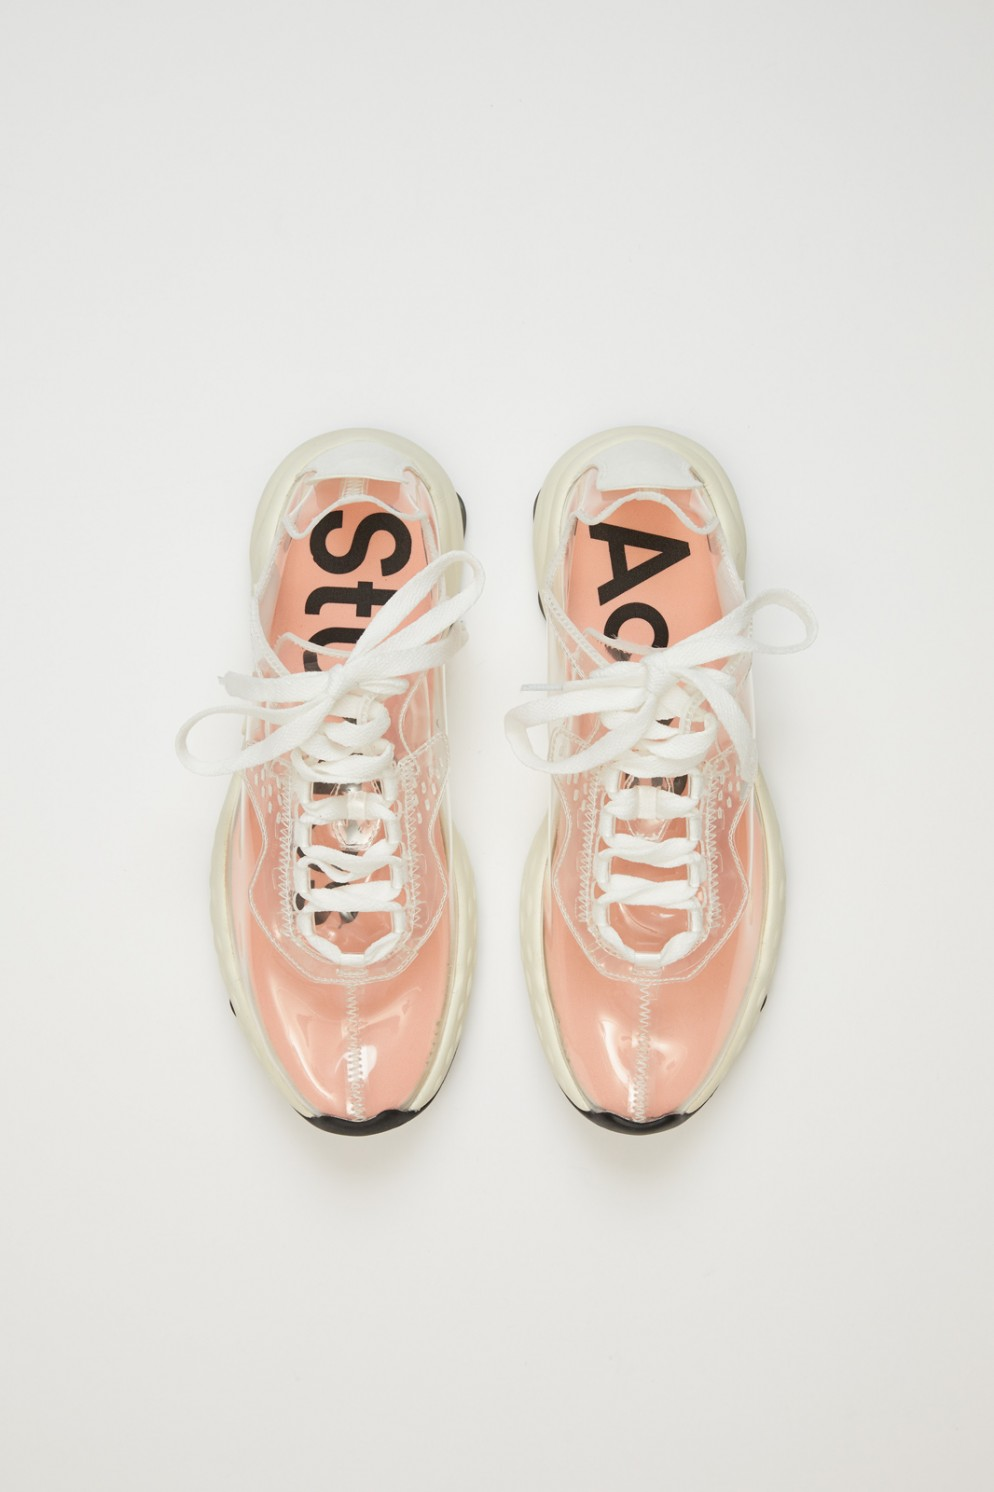 sneaker-acne-studio-limited-edition-04